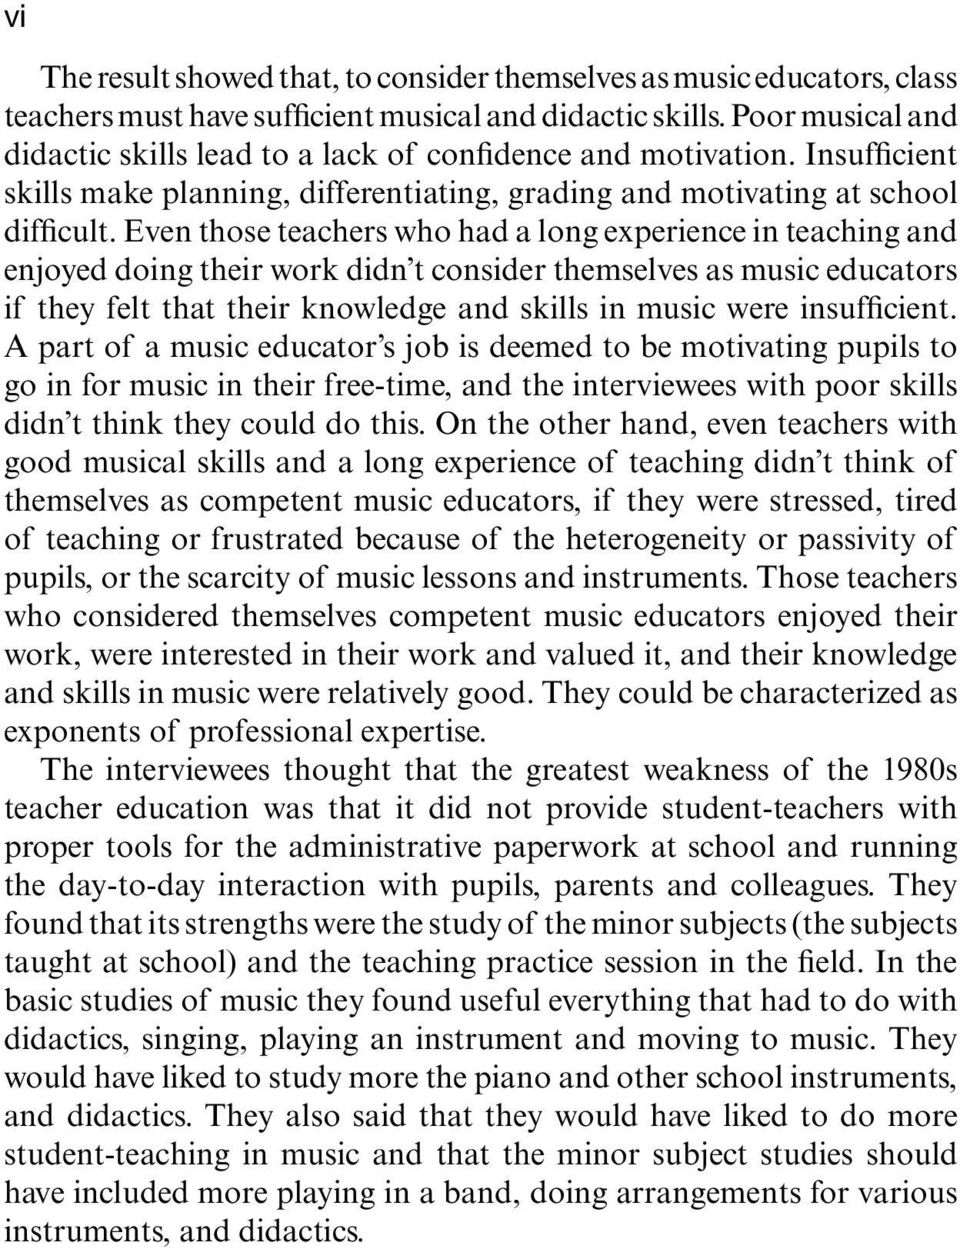 Even those teachers who had a long experience in teaching and enjoyed doing their work didn t consider themselves as music educators if they felt that their knowledge and skills in music were